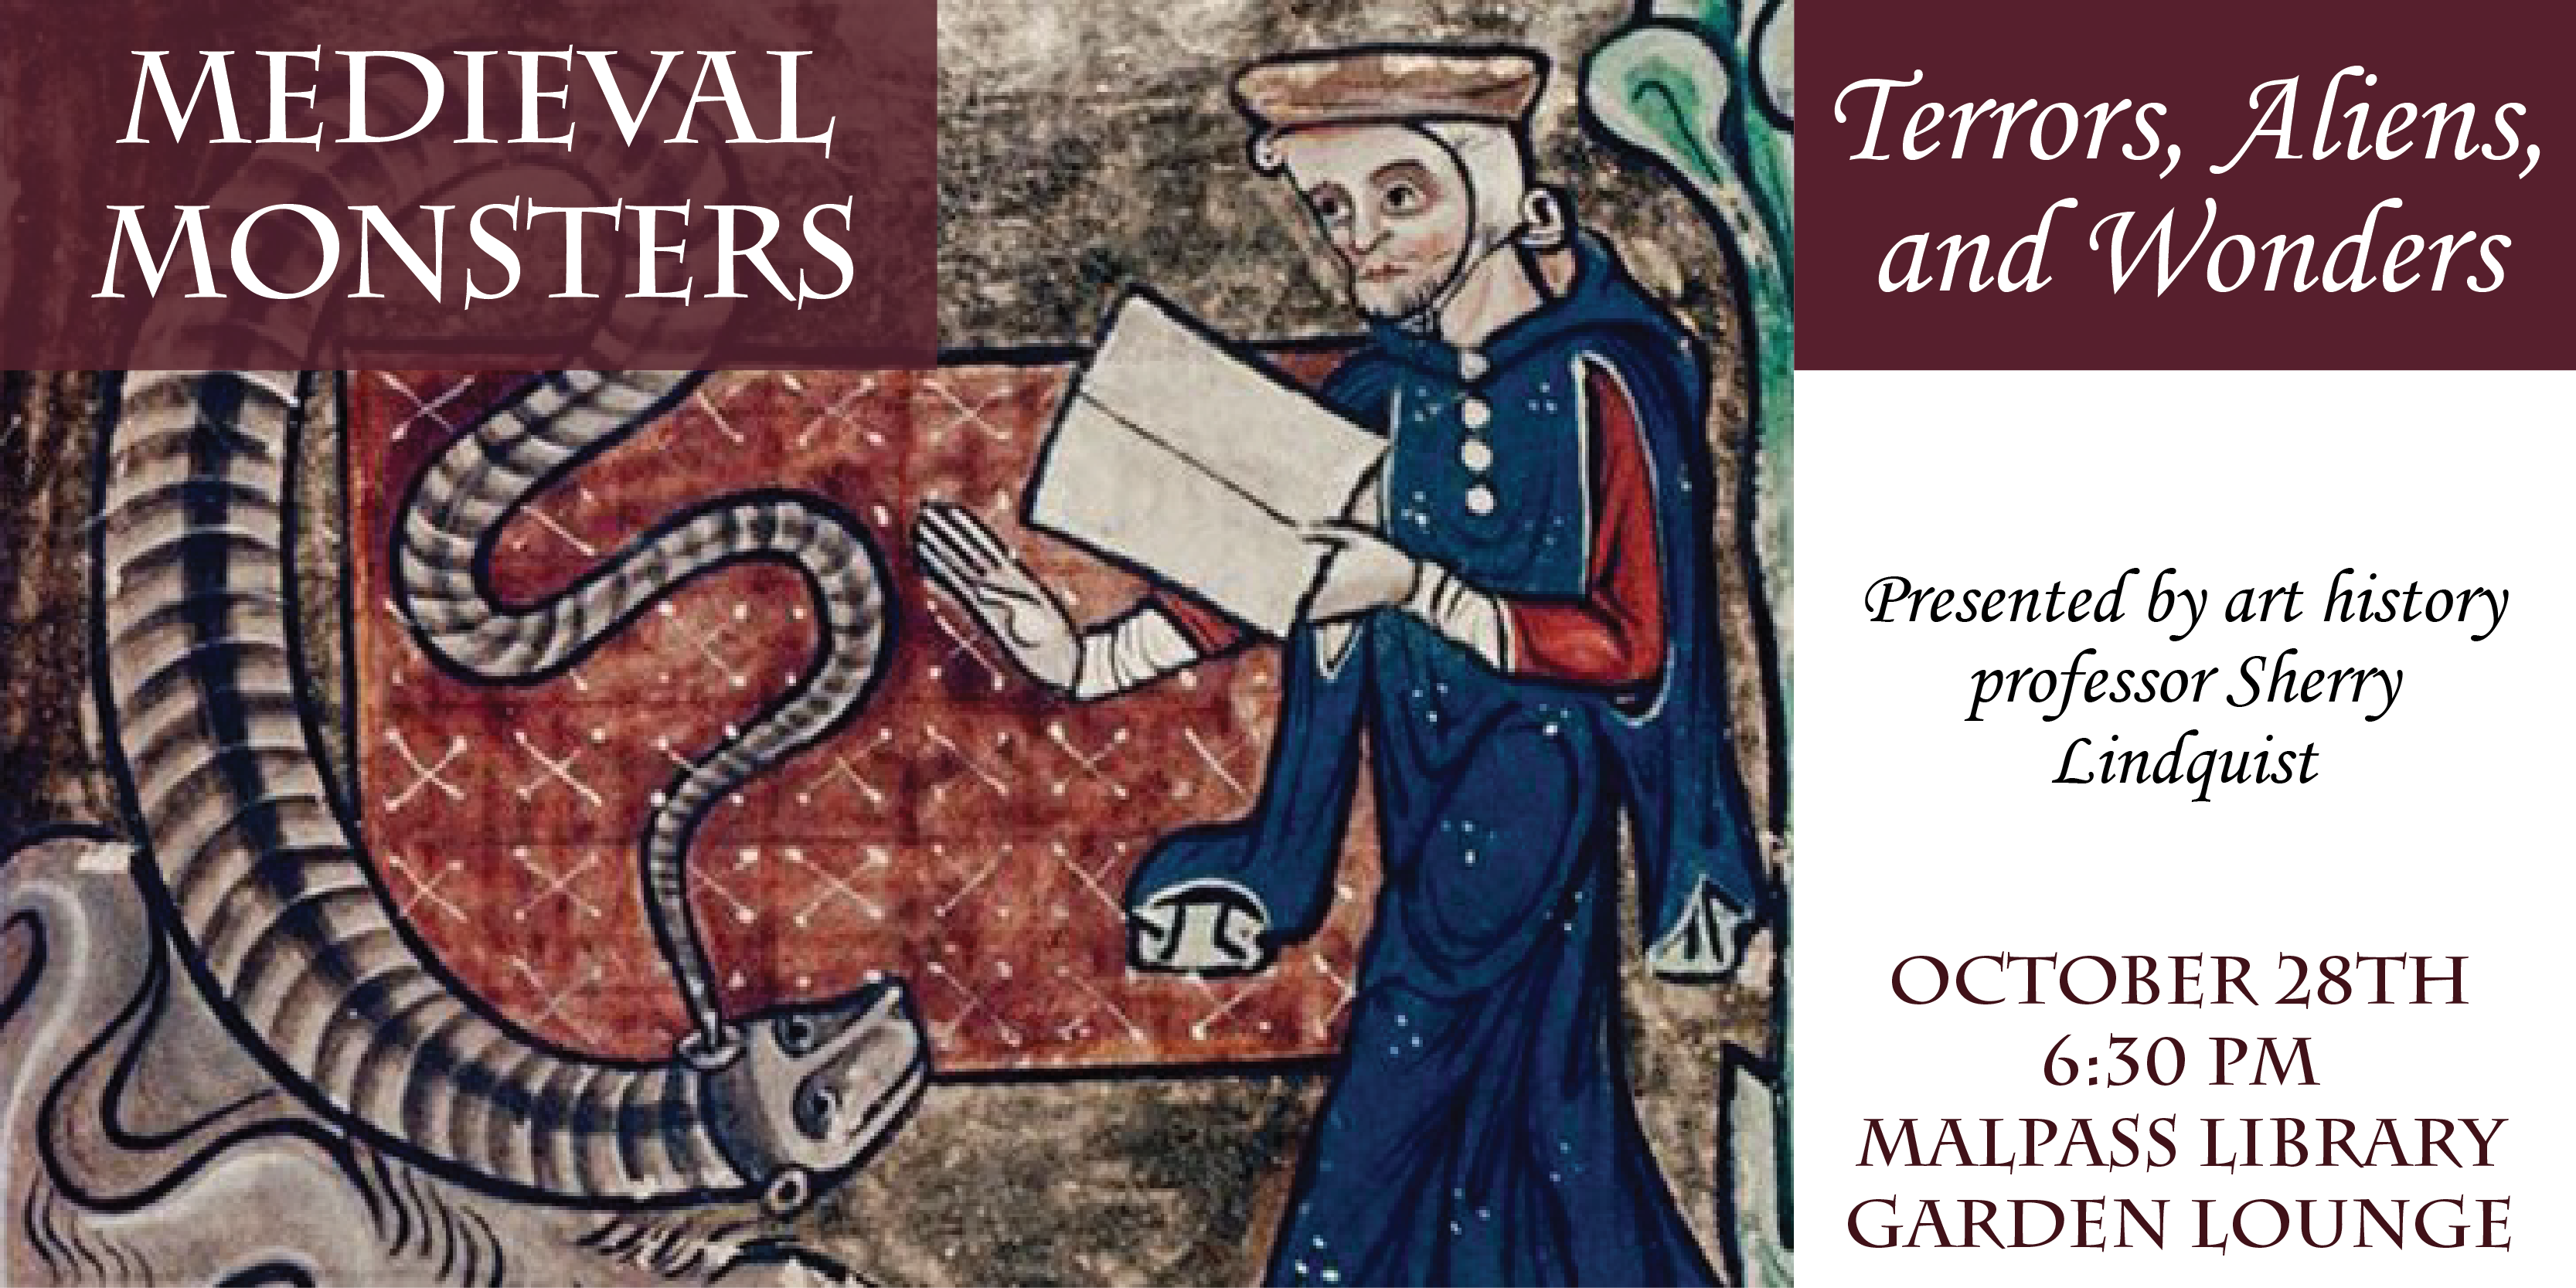 Artwork from medieval time period. Man holding a book with creature in foreground. Text about the event.